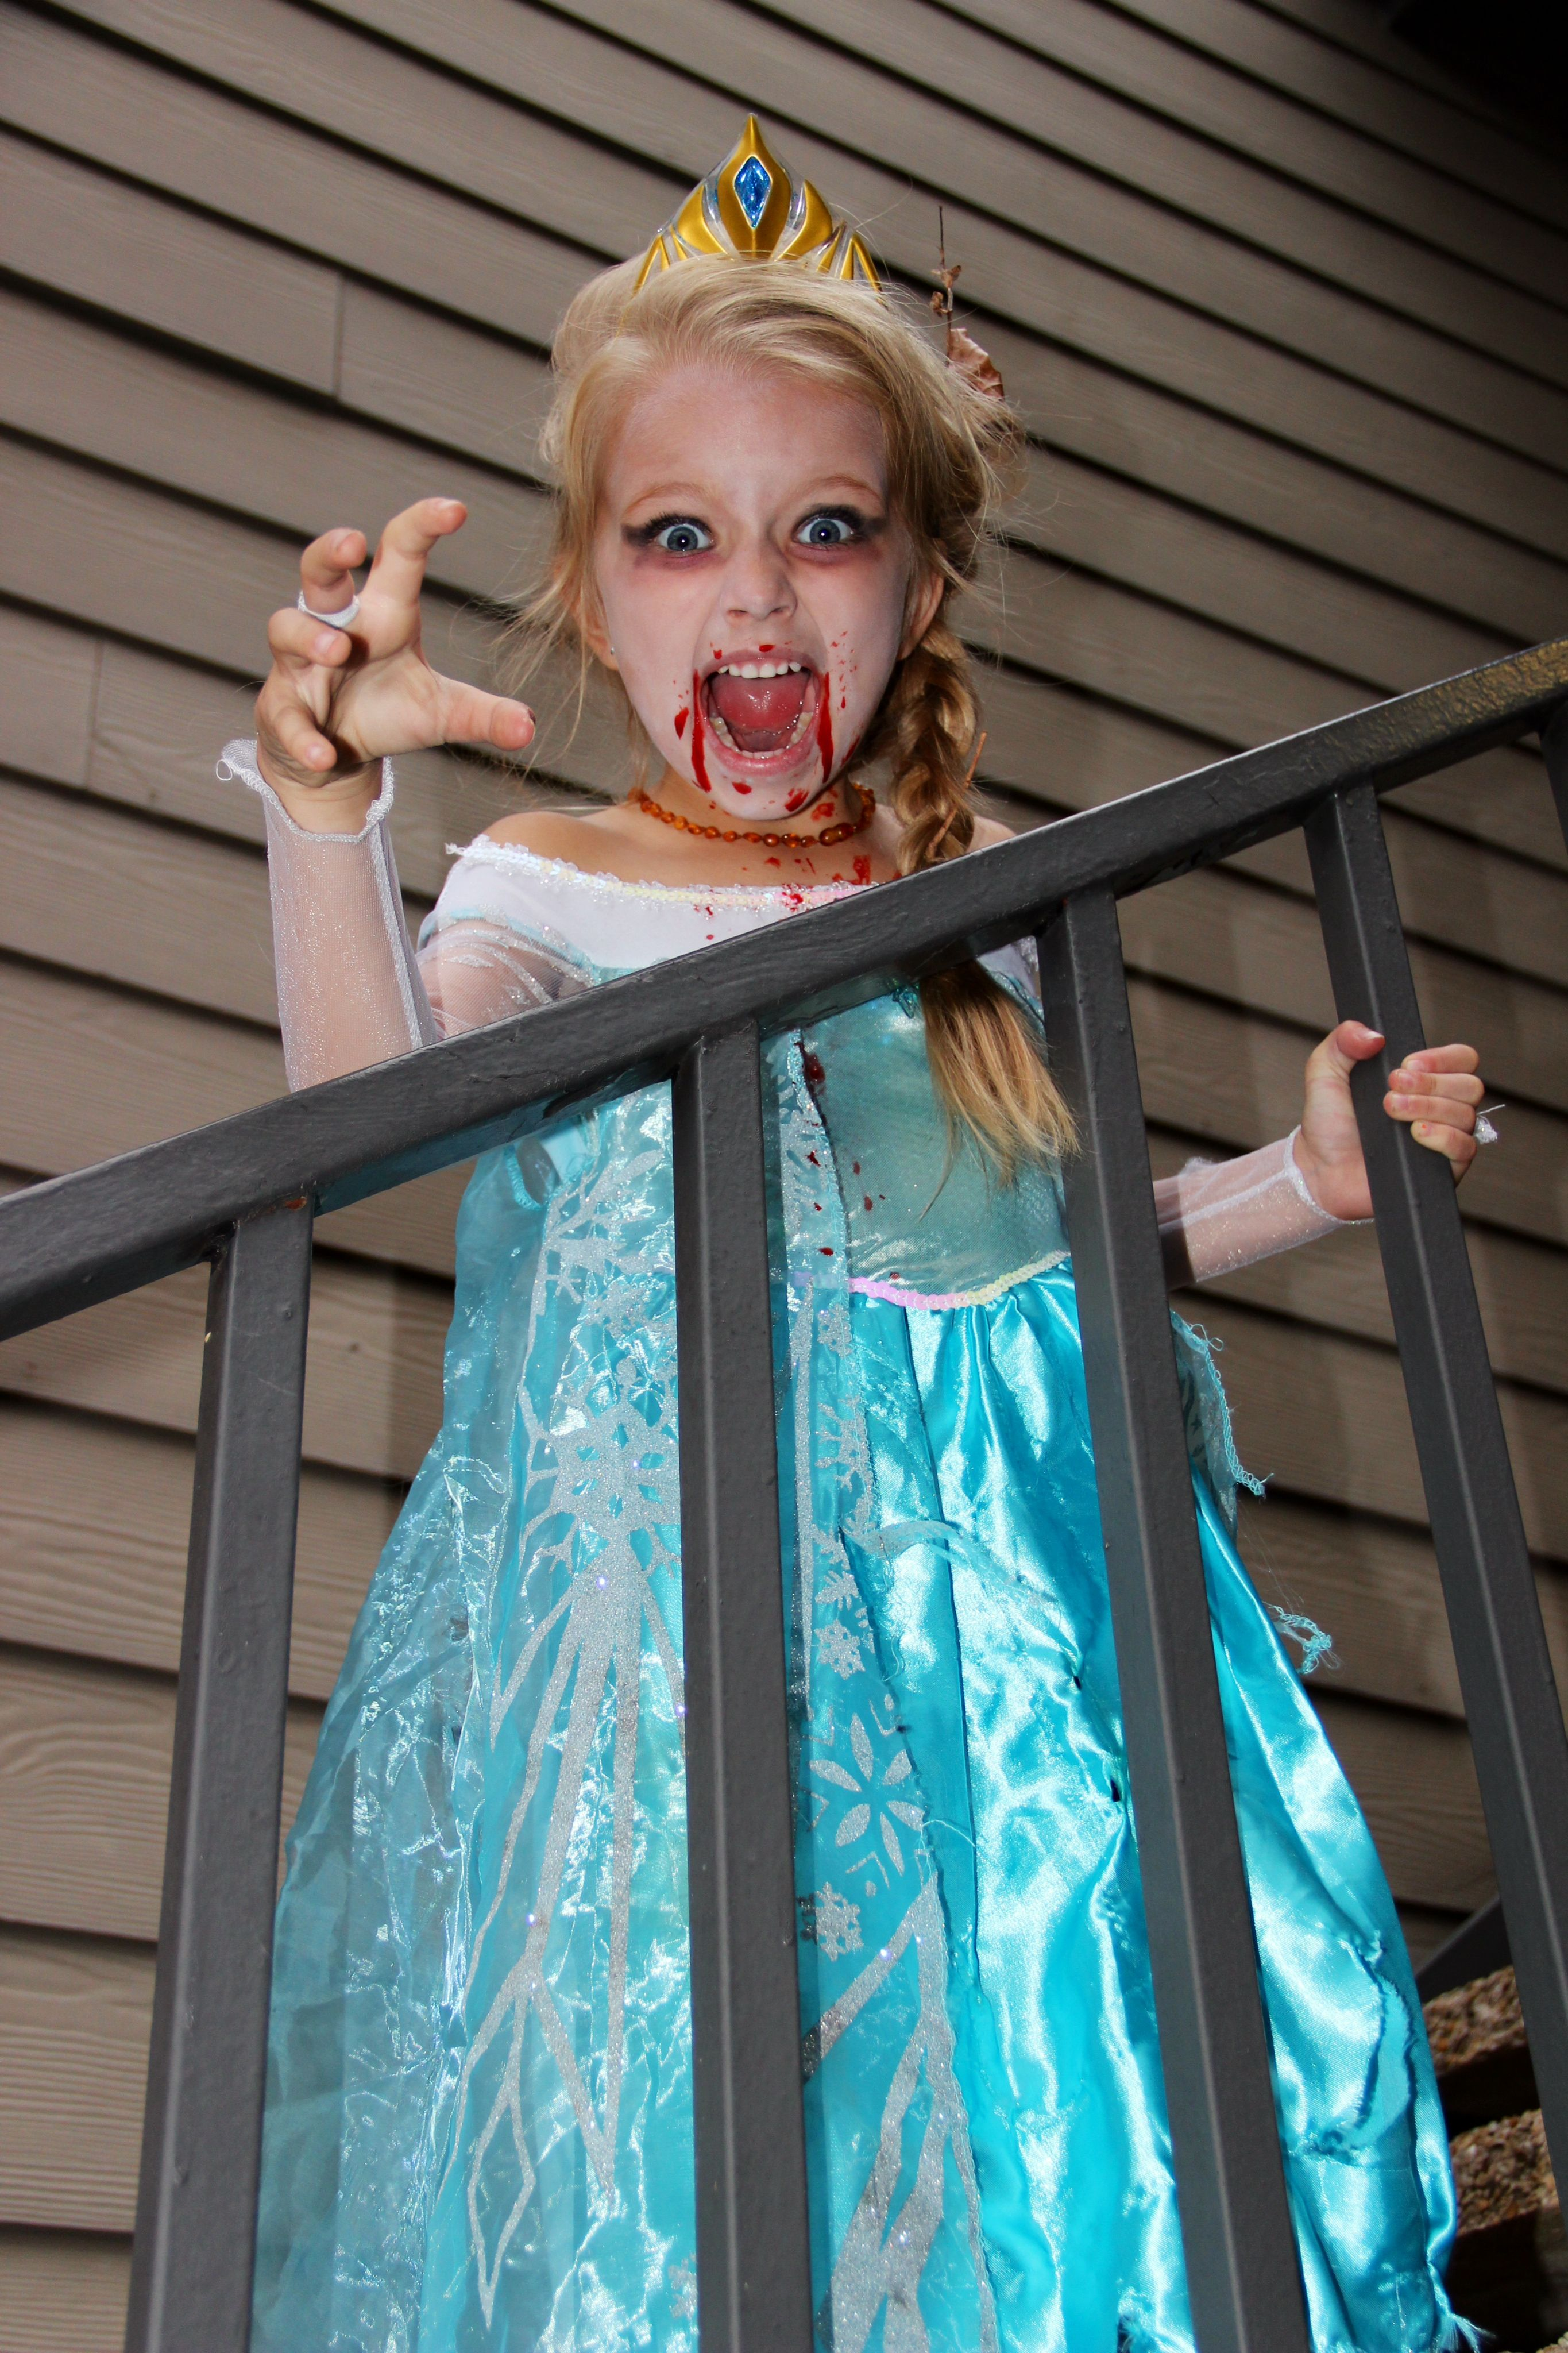 Elsa Halloween Costumes For Kids.Love This Vampire Elsa Costume Of 6 Year Old Gma Viewer Emily Emily S Mom Sent Us Th Old Halloween Costumes Daughter Halloween Costumes Vampire Costume Kids